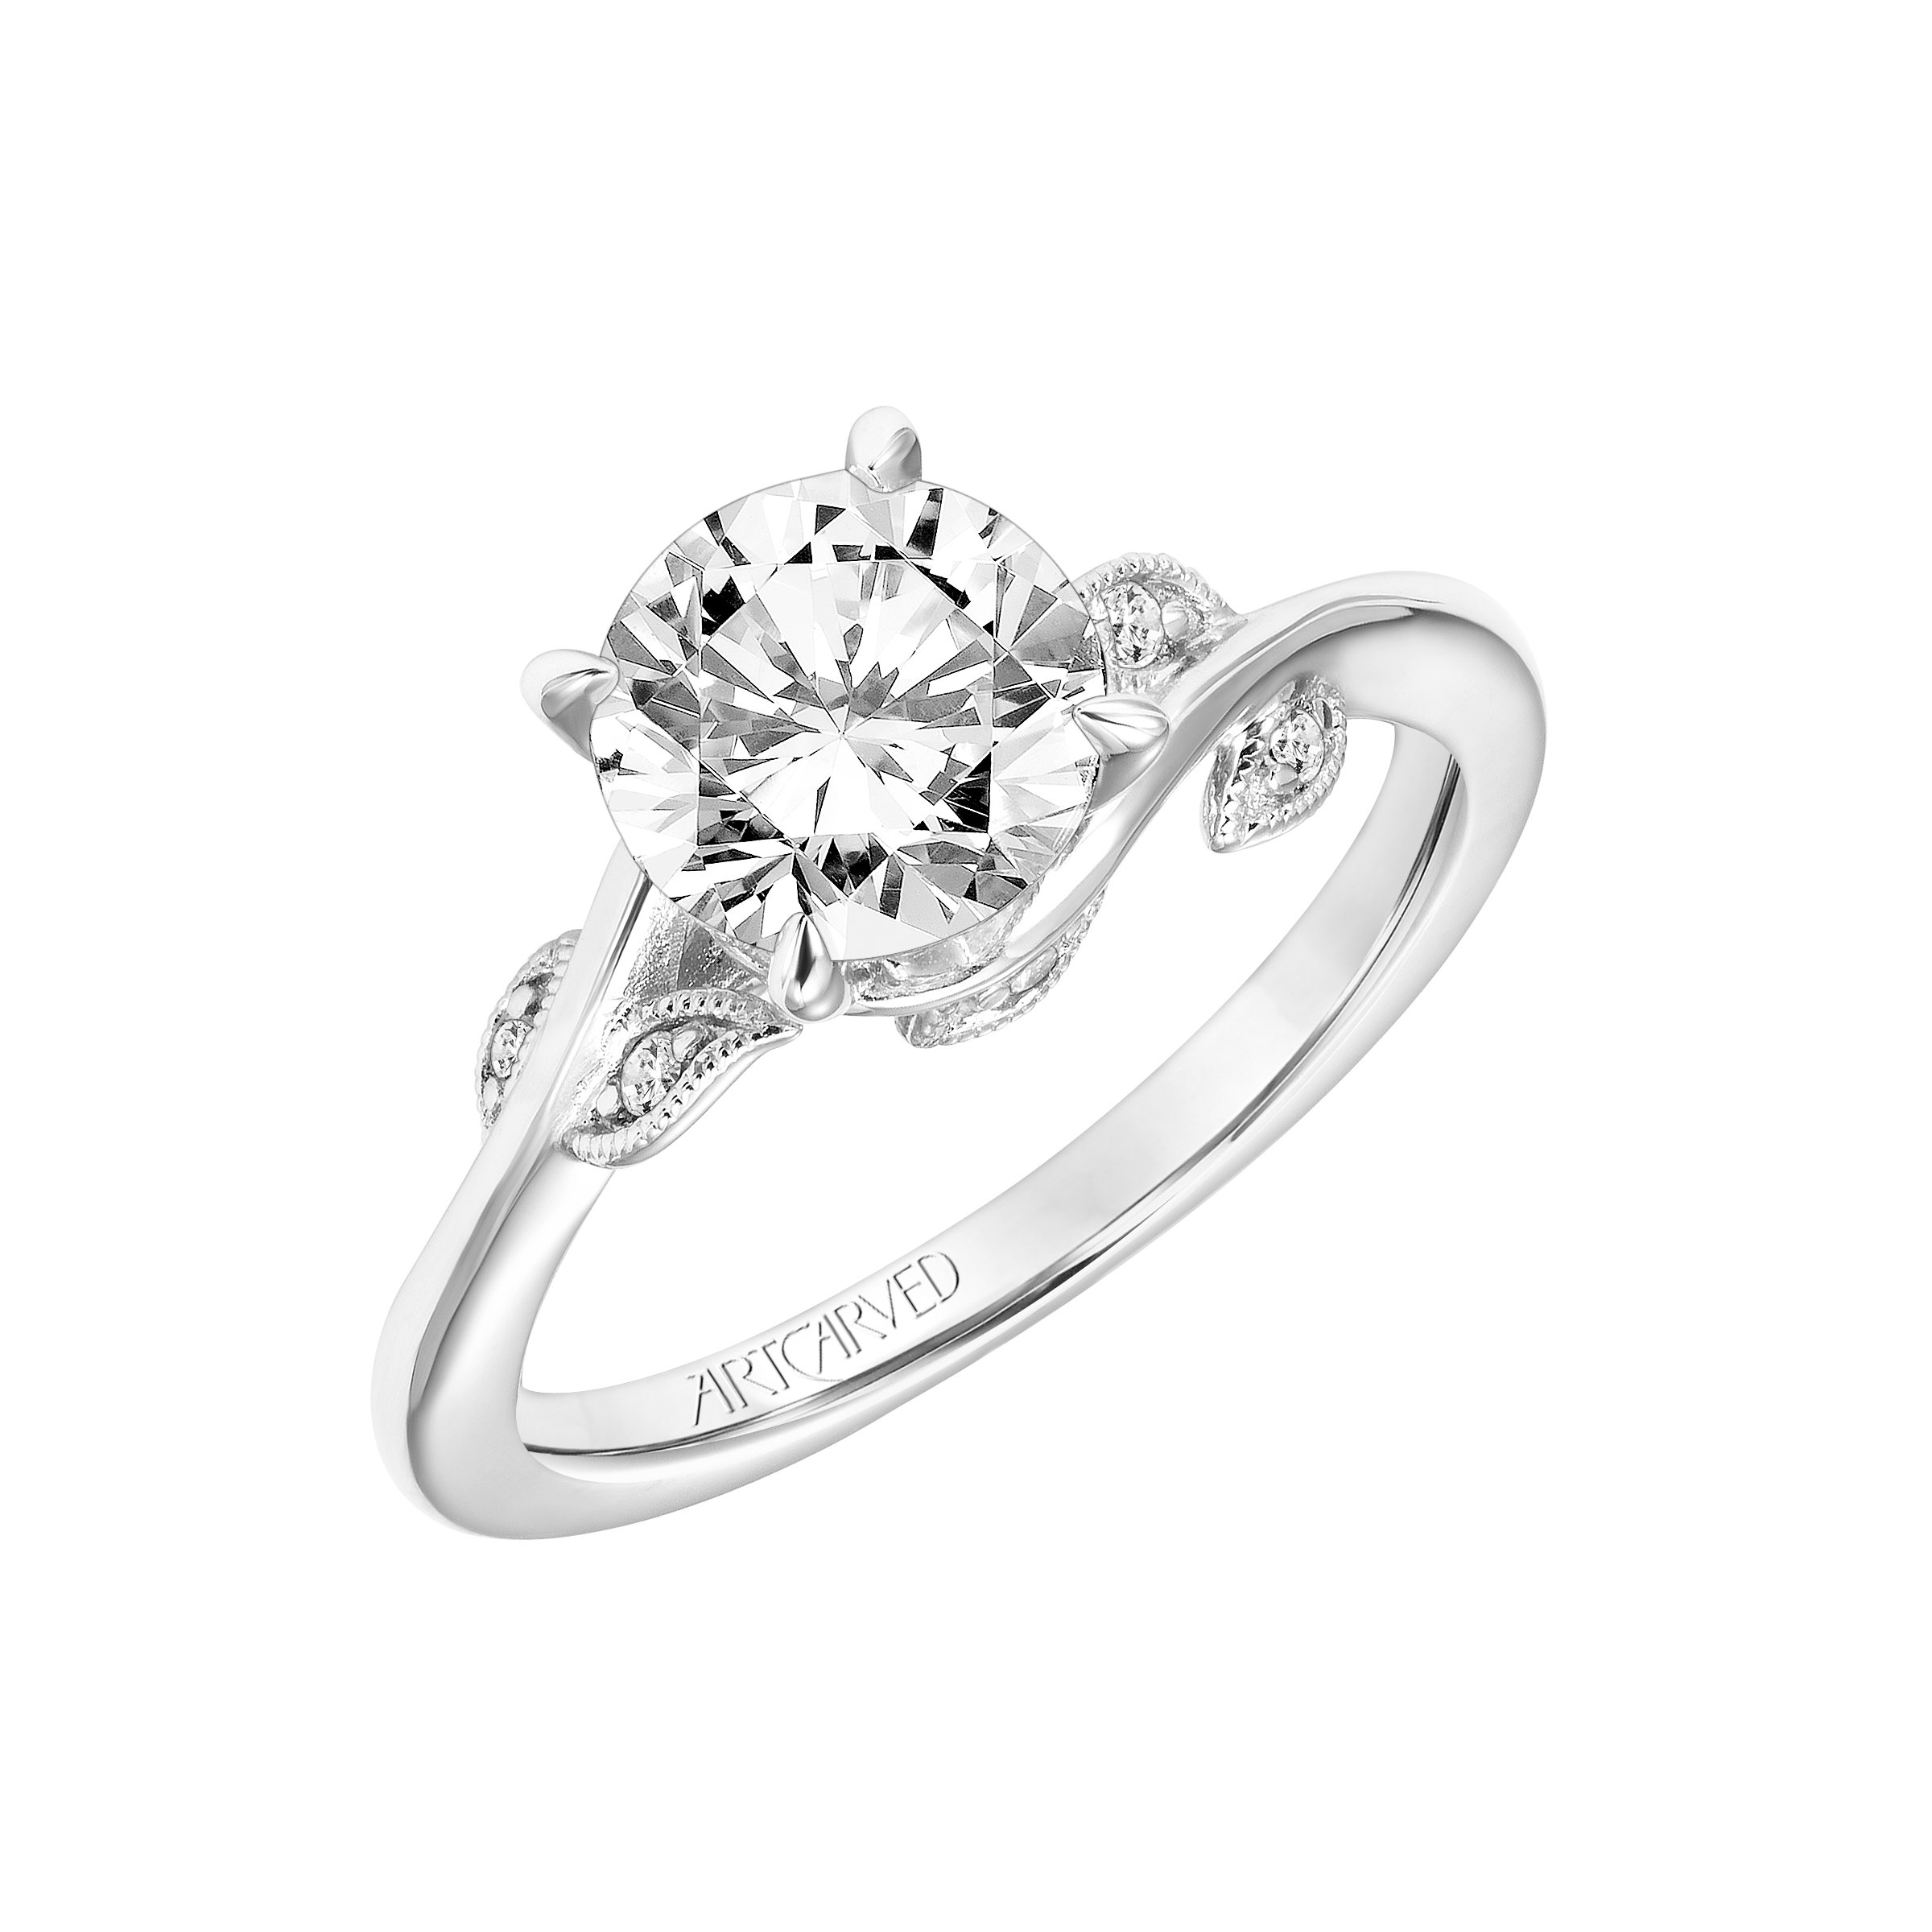 sterling ip set t w diamond rings twisted miabella band silver bridal walmart carat twist engagement halo com